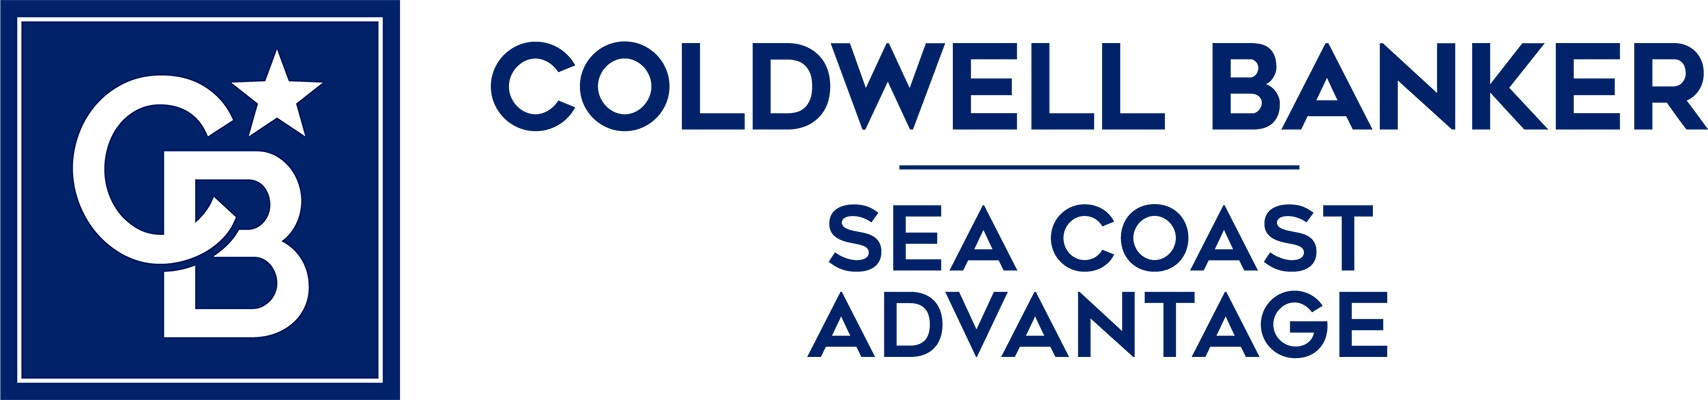 Rushell Bongiorno - Coldwell Banker Sea Coast Advantage Realty Logo